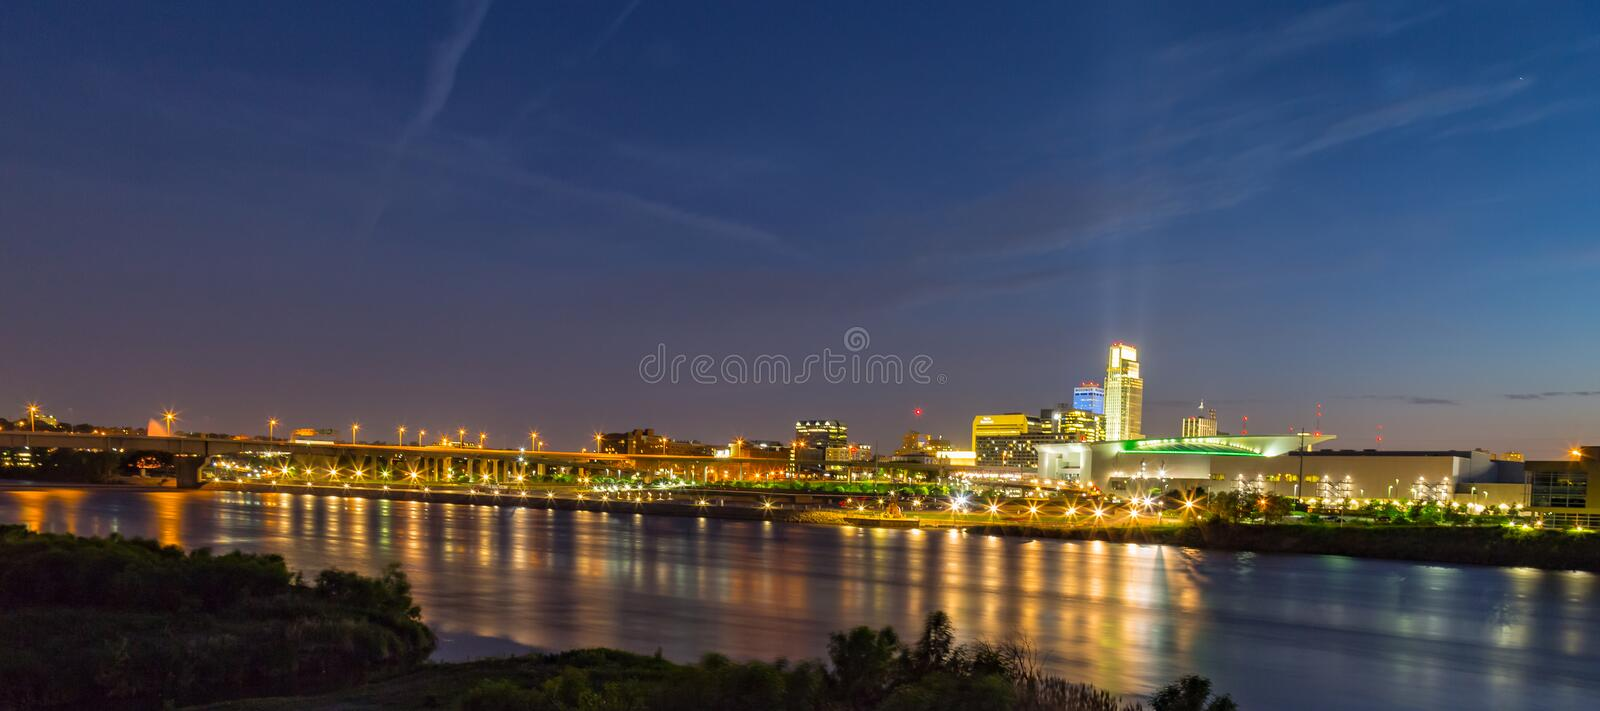 Night scene of Omaha waterfront with light reflections on the r Omaha Nebraska skyline with beautiful sky colors just after sunset royalty free stock image